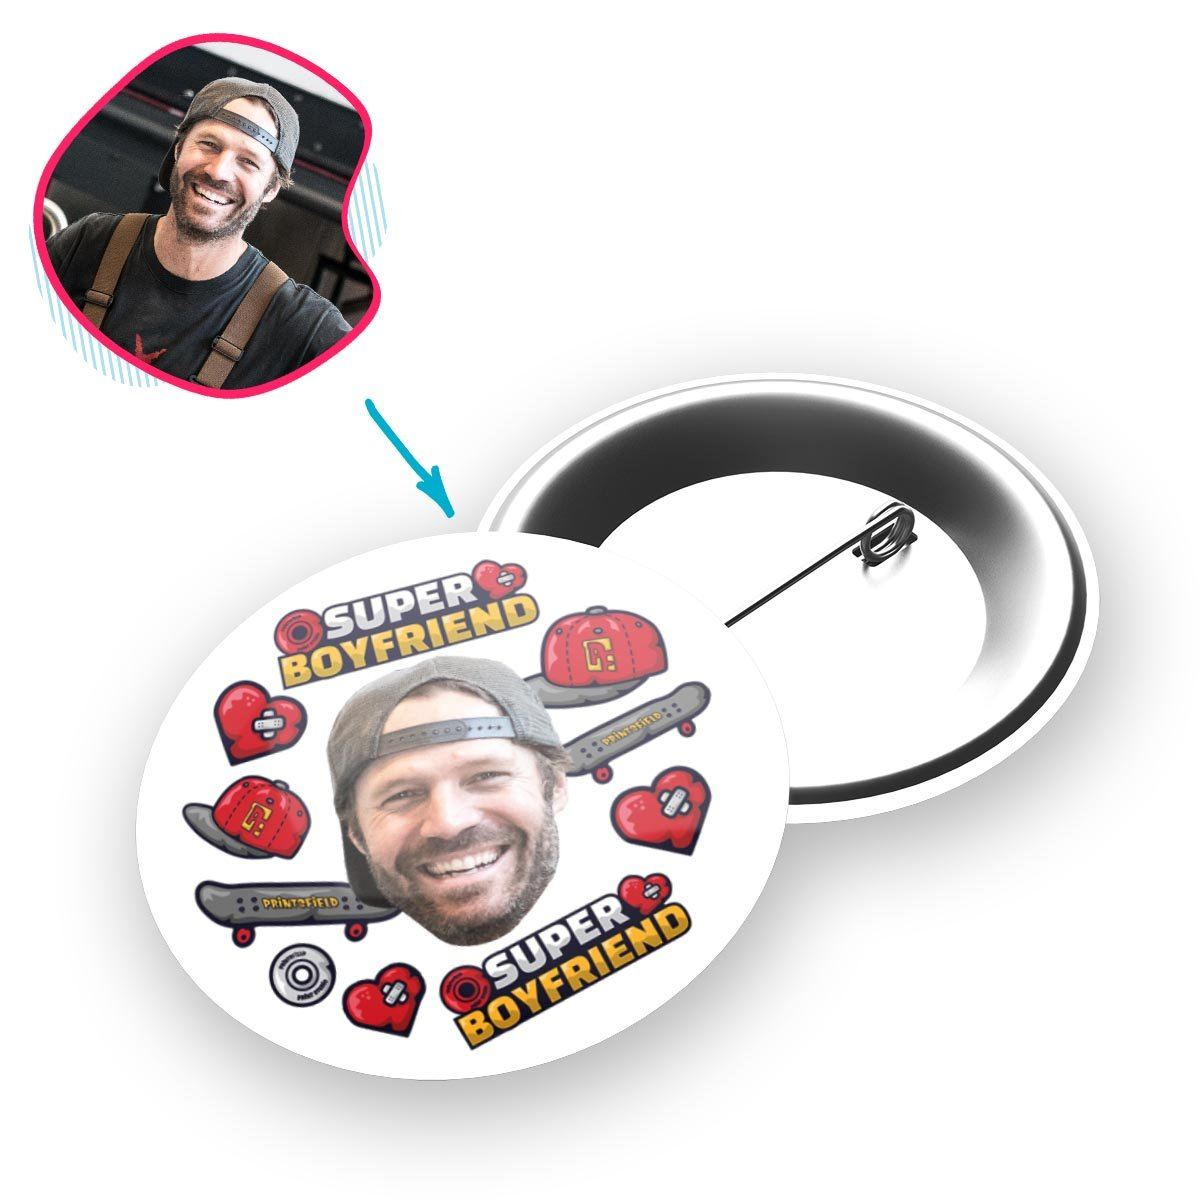 White Boyfriend personalized pin with photo of face printed on it